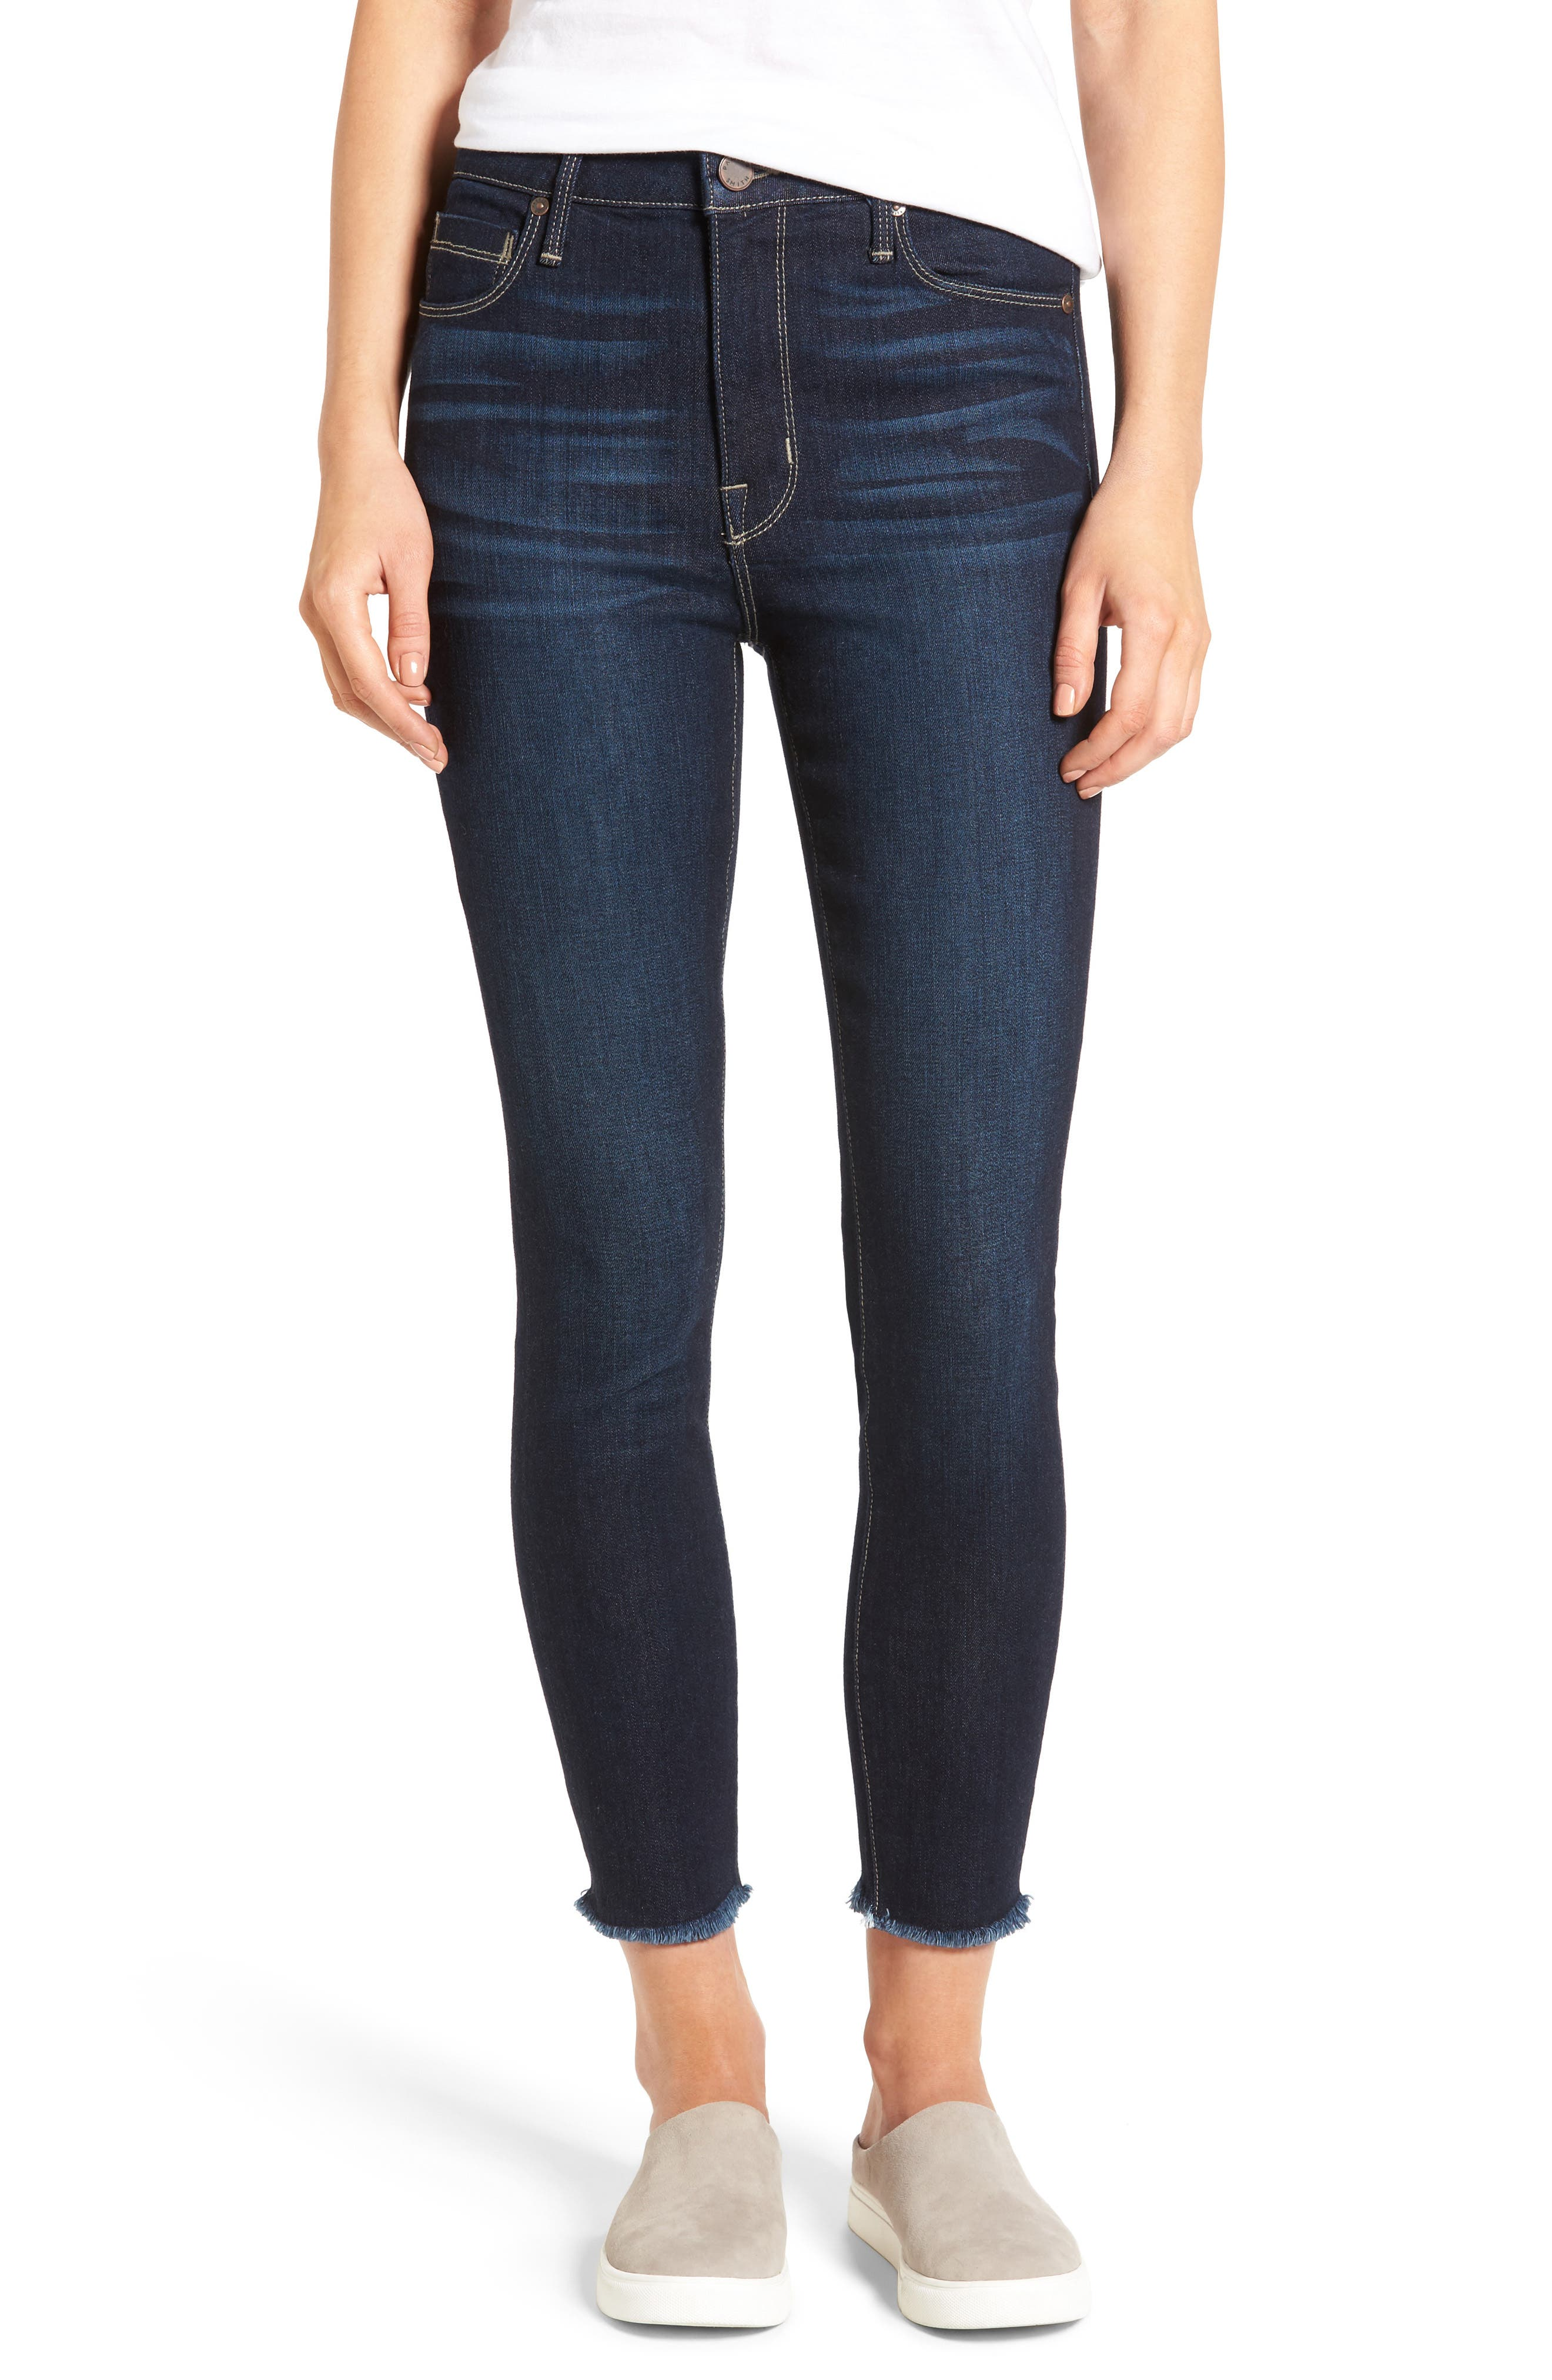 PARKER SMITH Bombshell Raw Hem Stretch Skinny Jeans